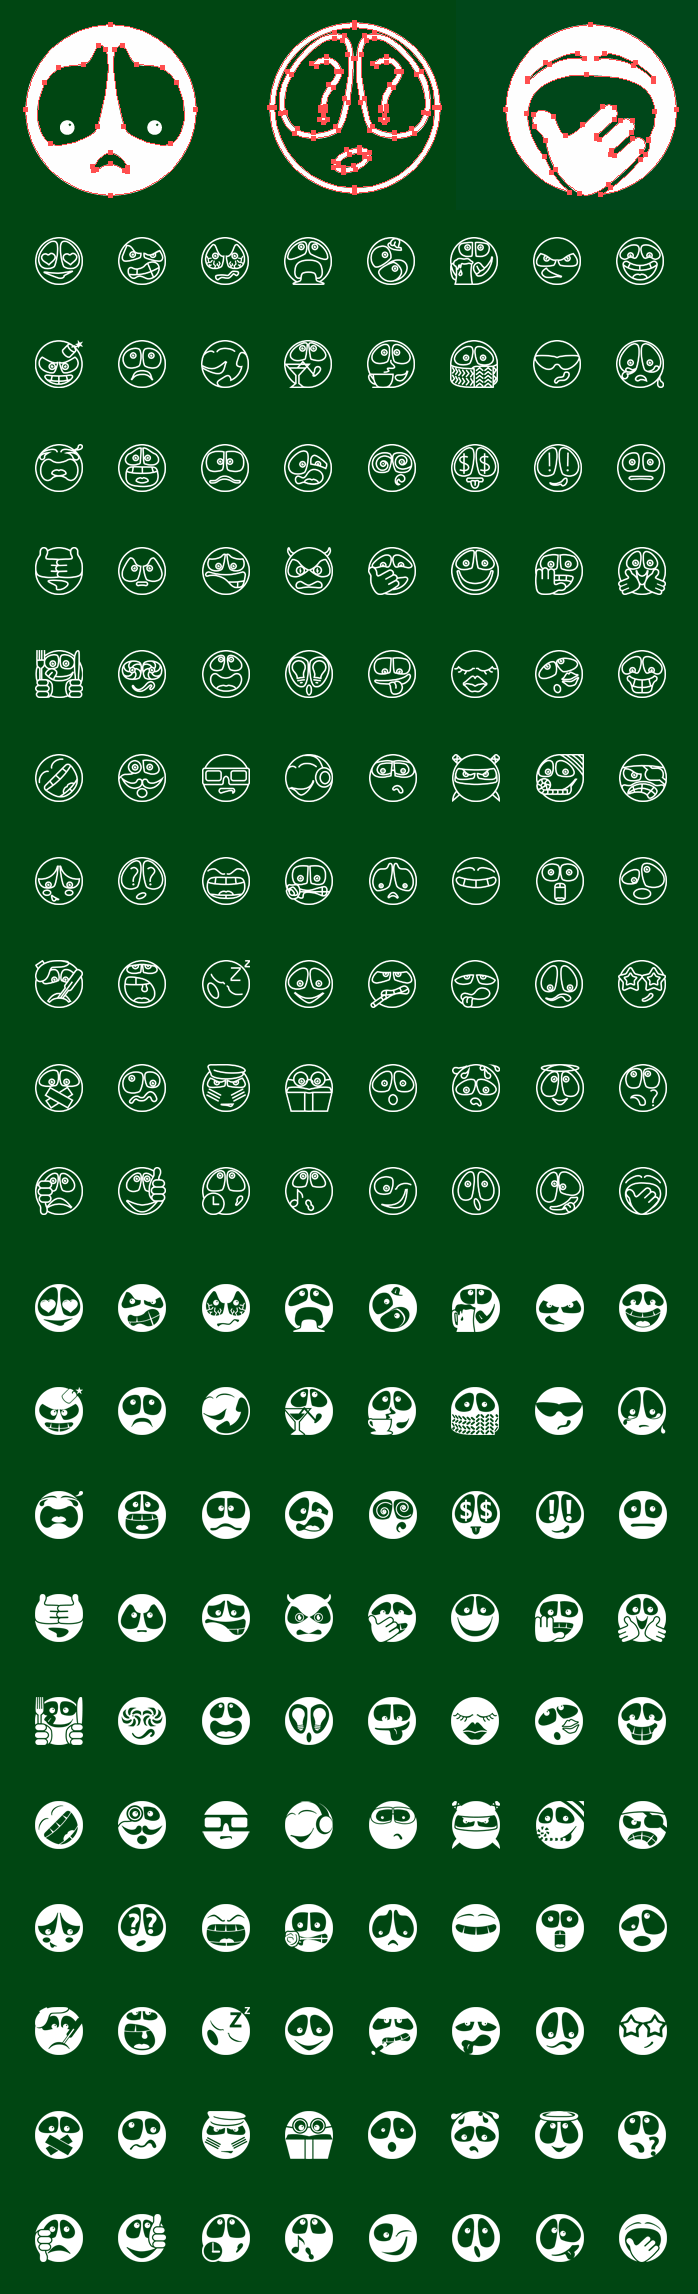 Metro Emoticons SVG Icons